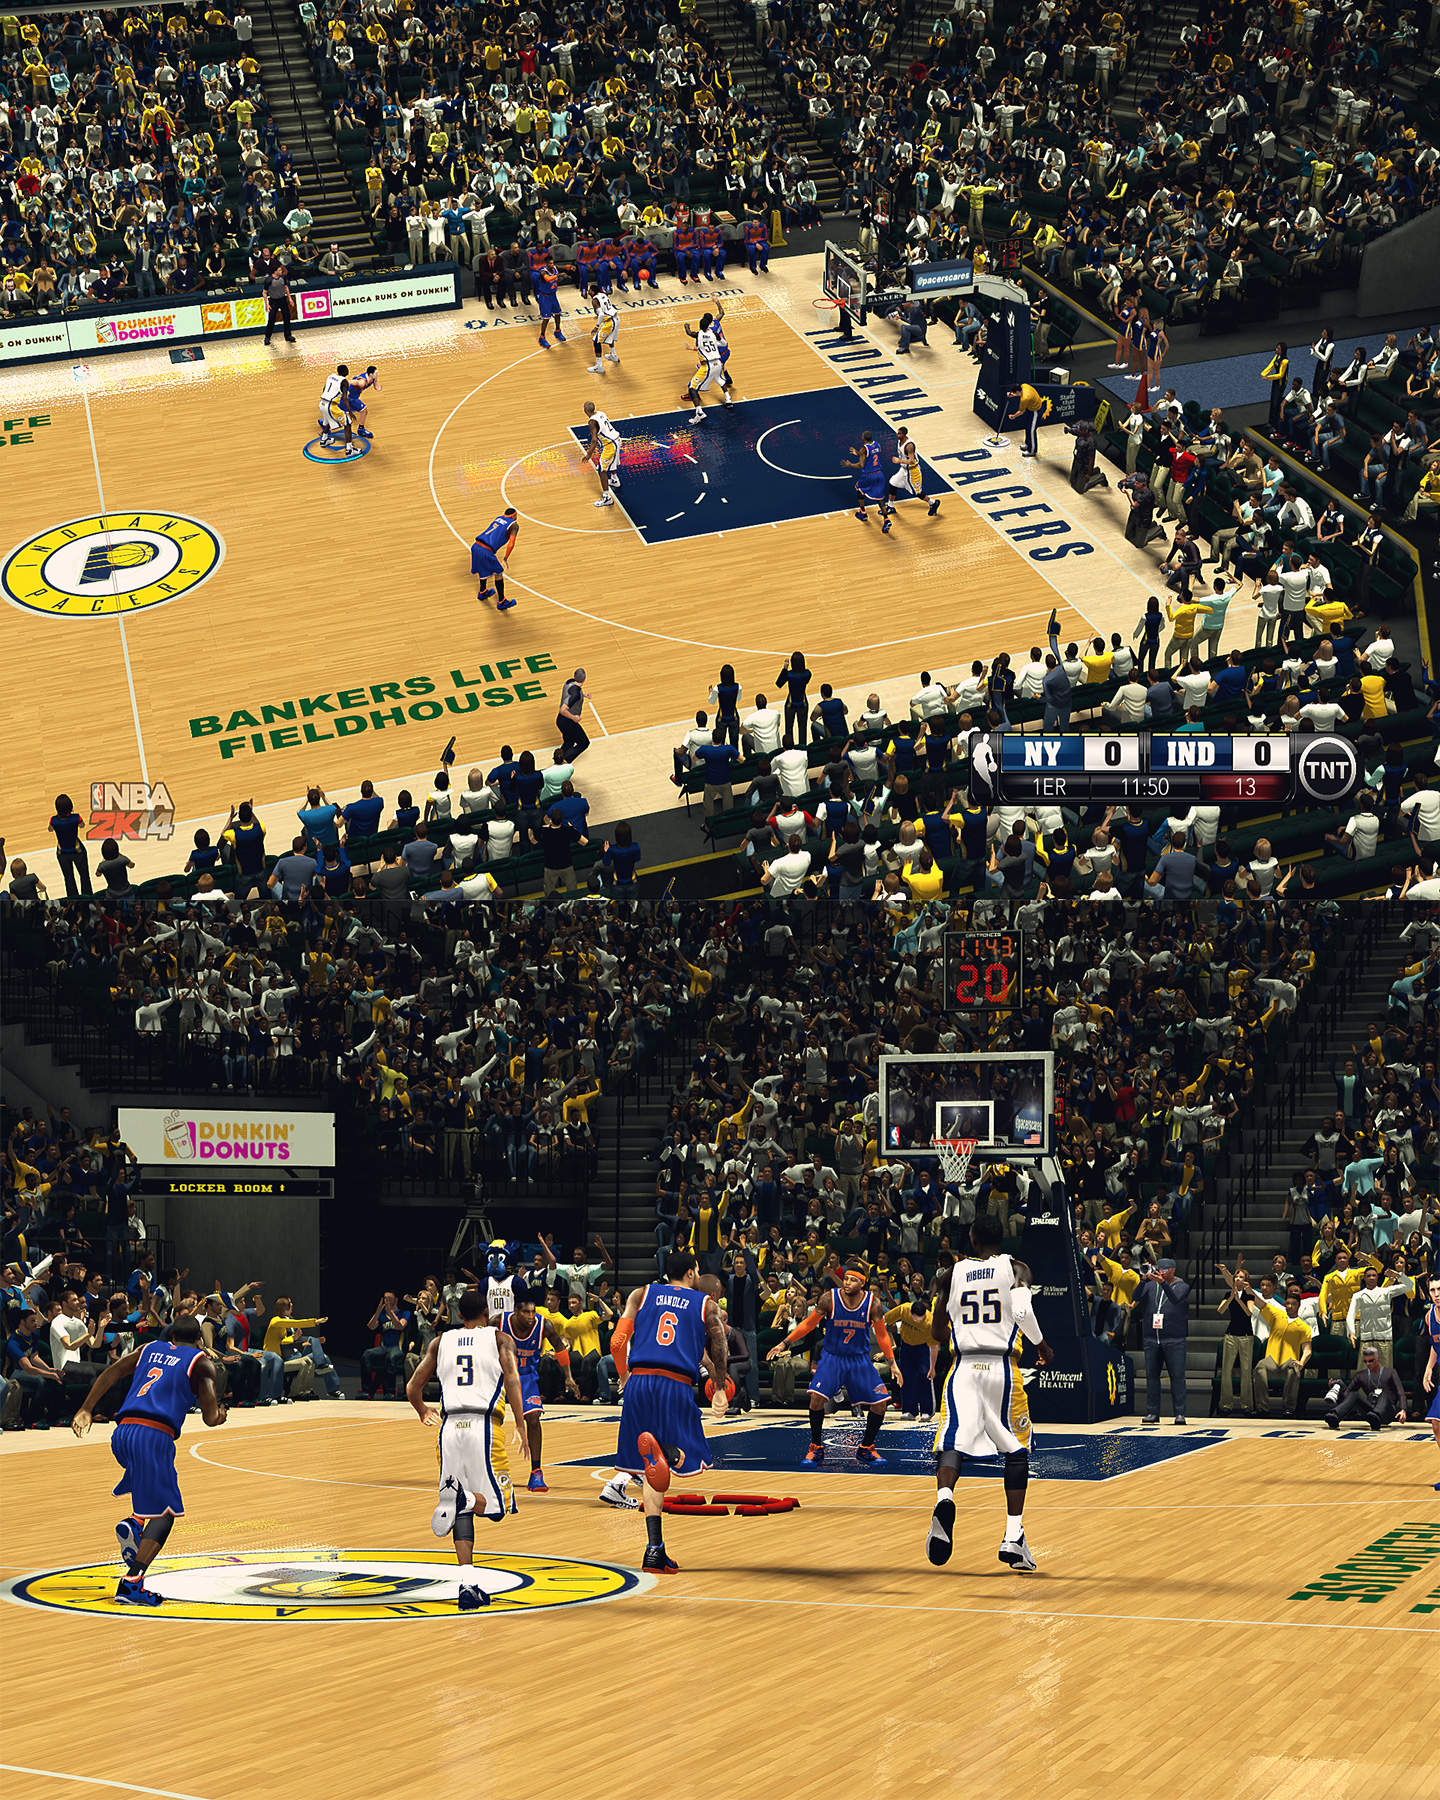 Indiana Pacers - Bankers Life Fieldhouse - HD Arena